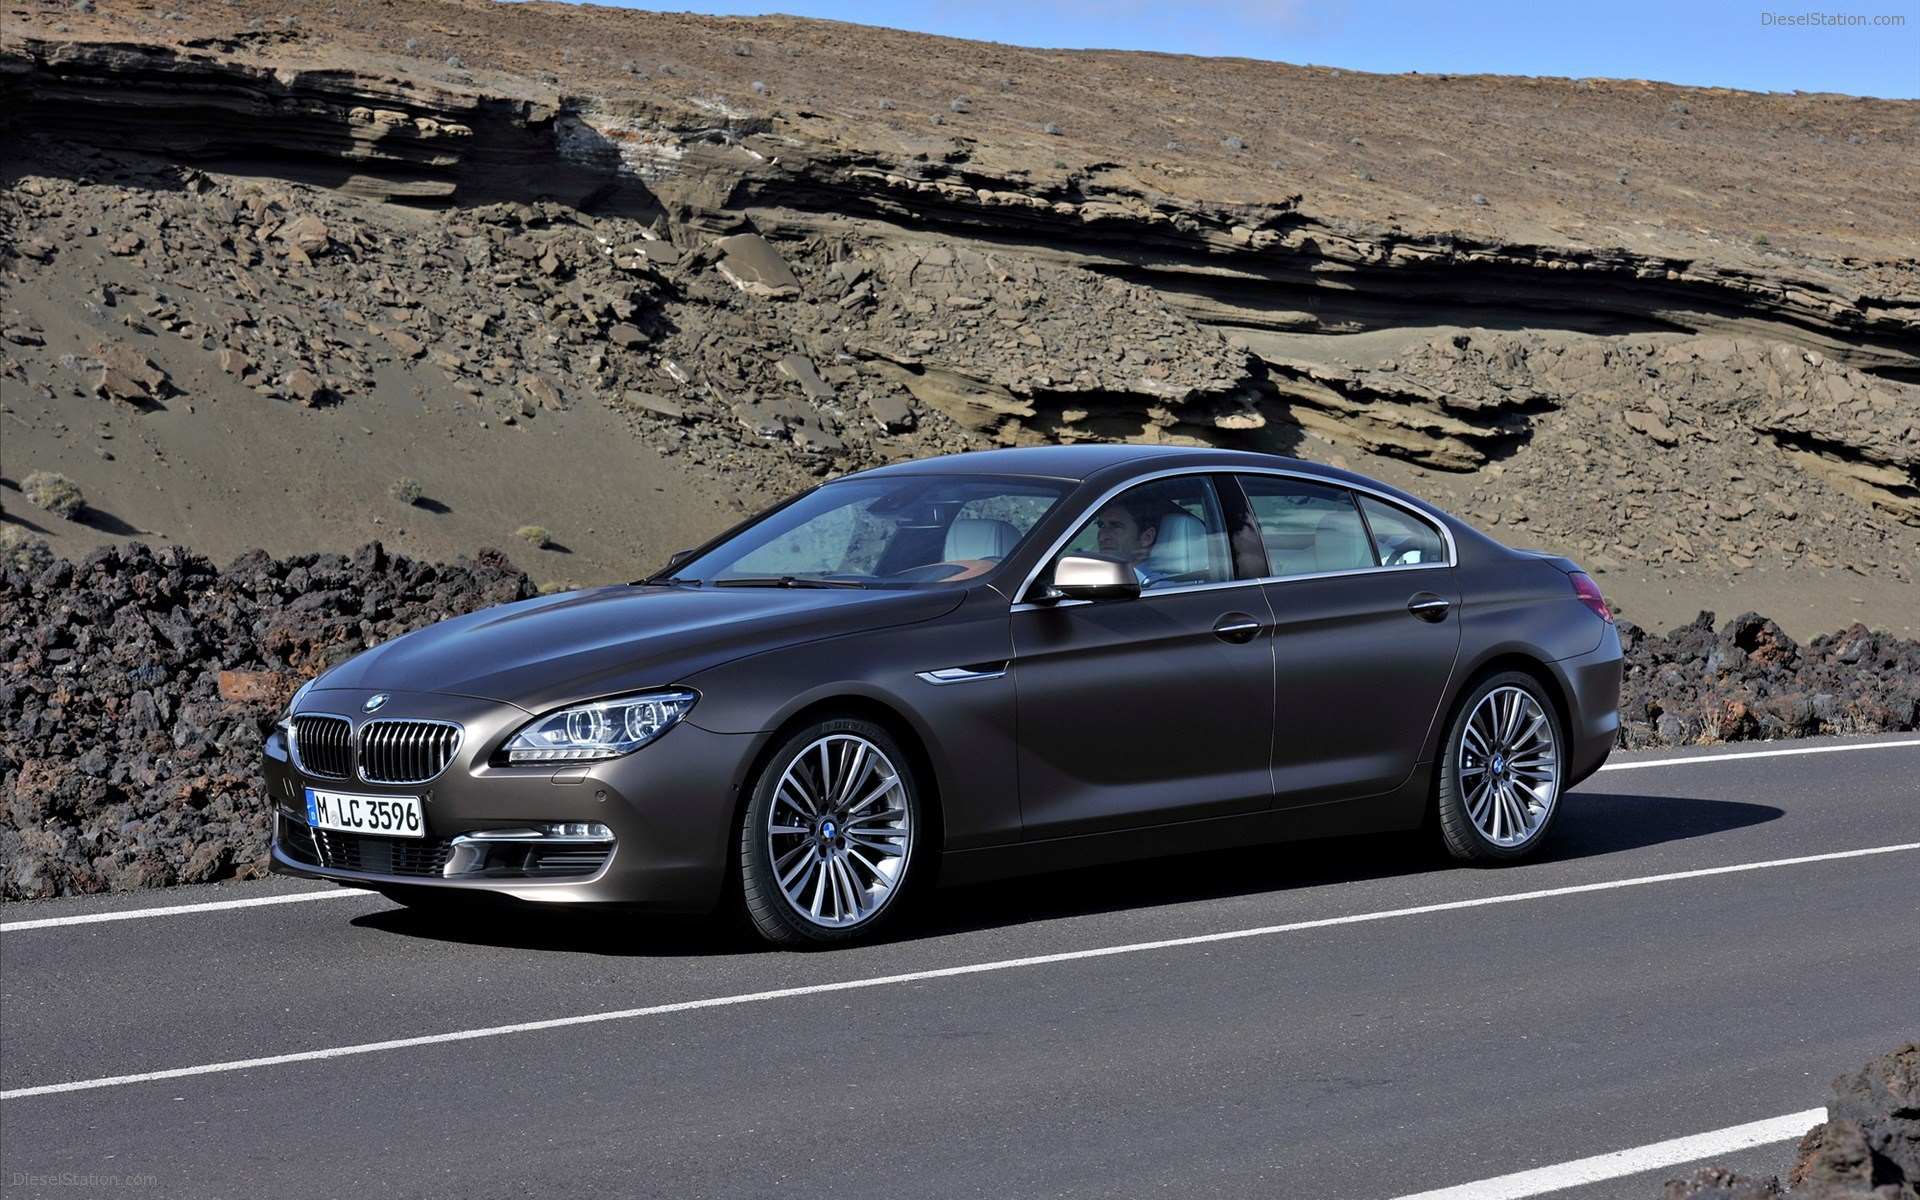 2013 Bmw 6 Series Gran Coupe #5